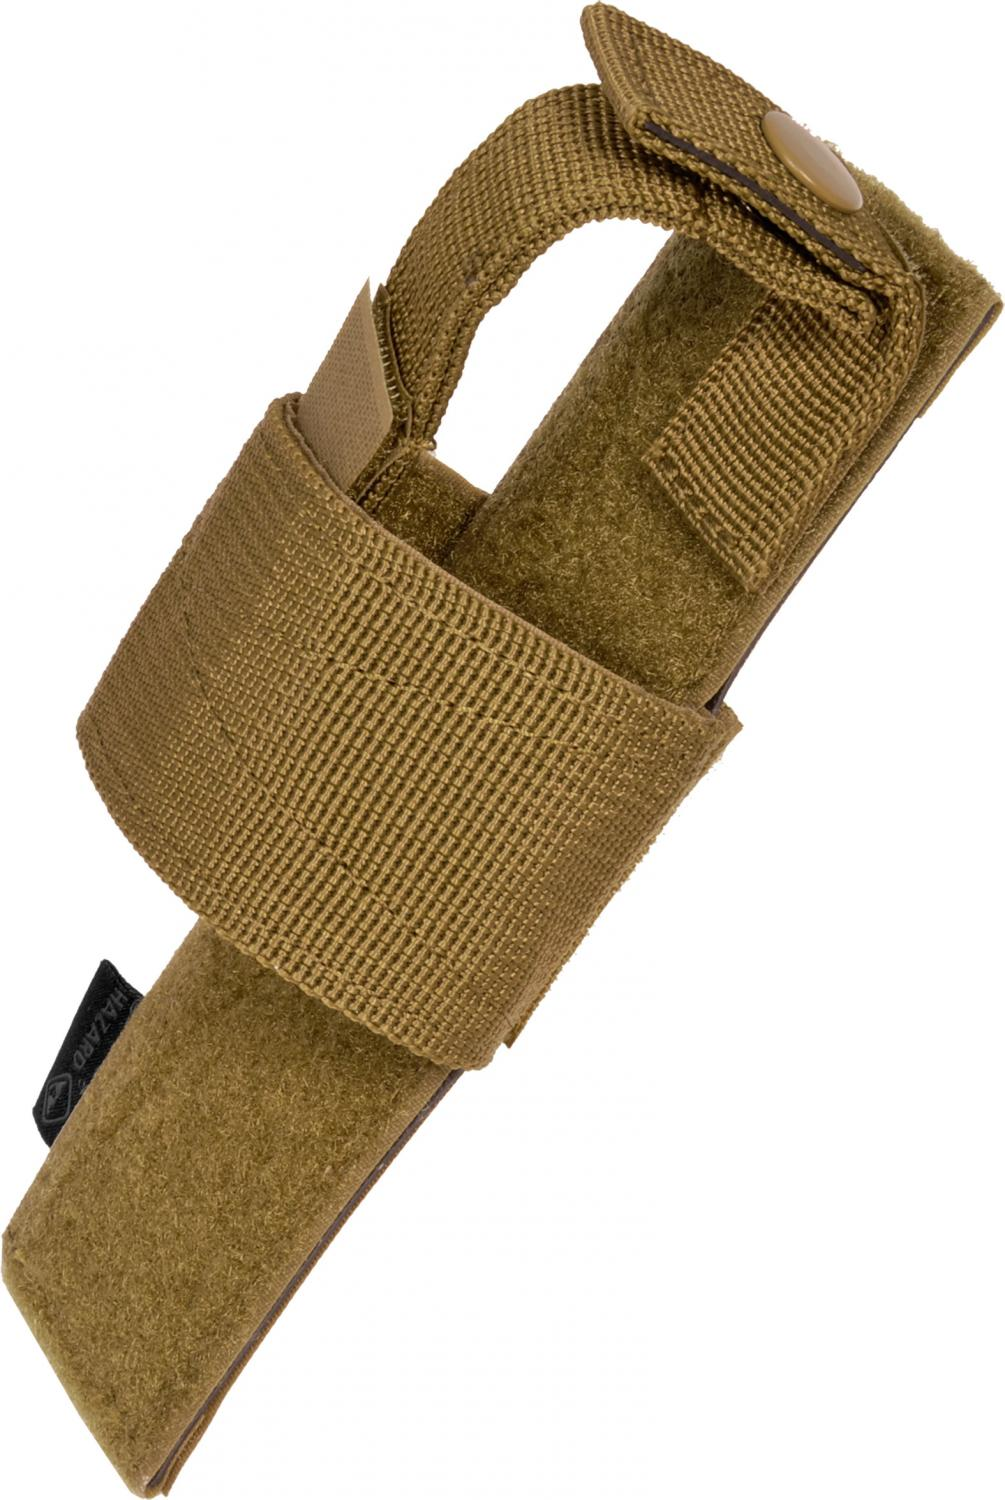 Hazard 4 Stick-Up Modular Universal Holster, Coyote